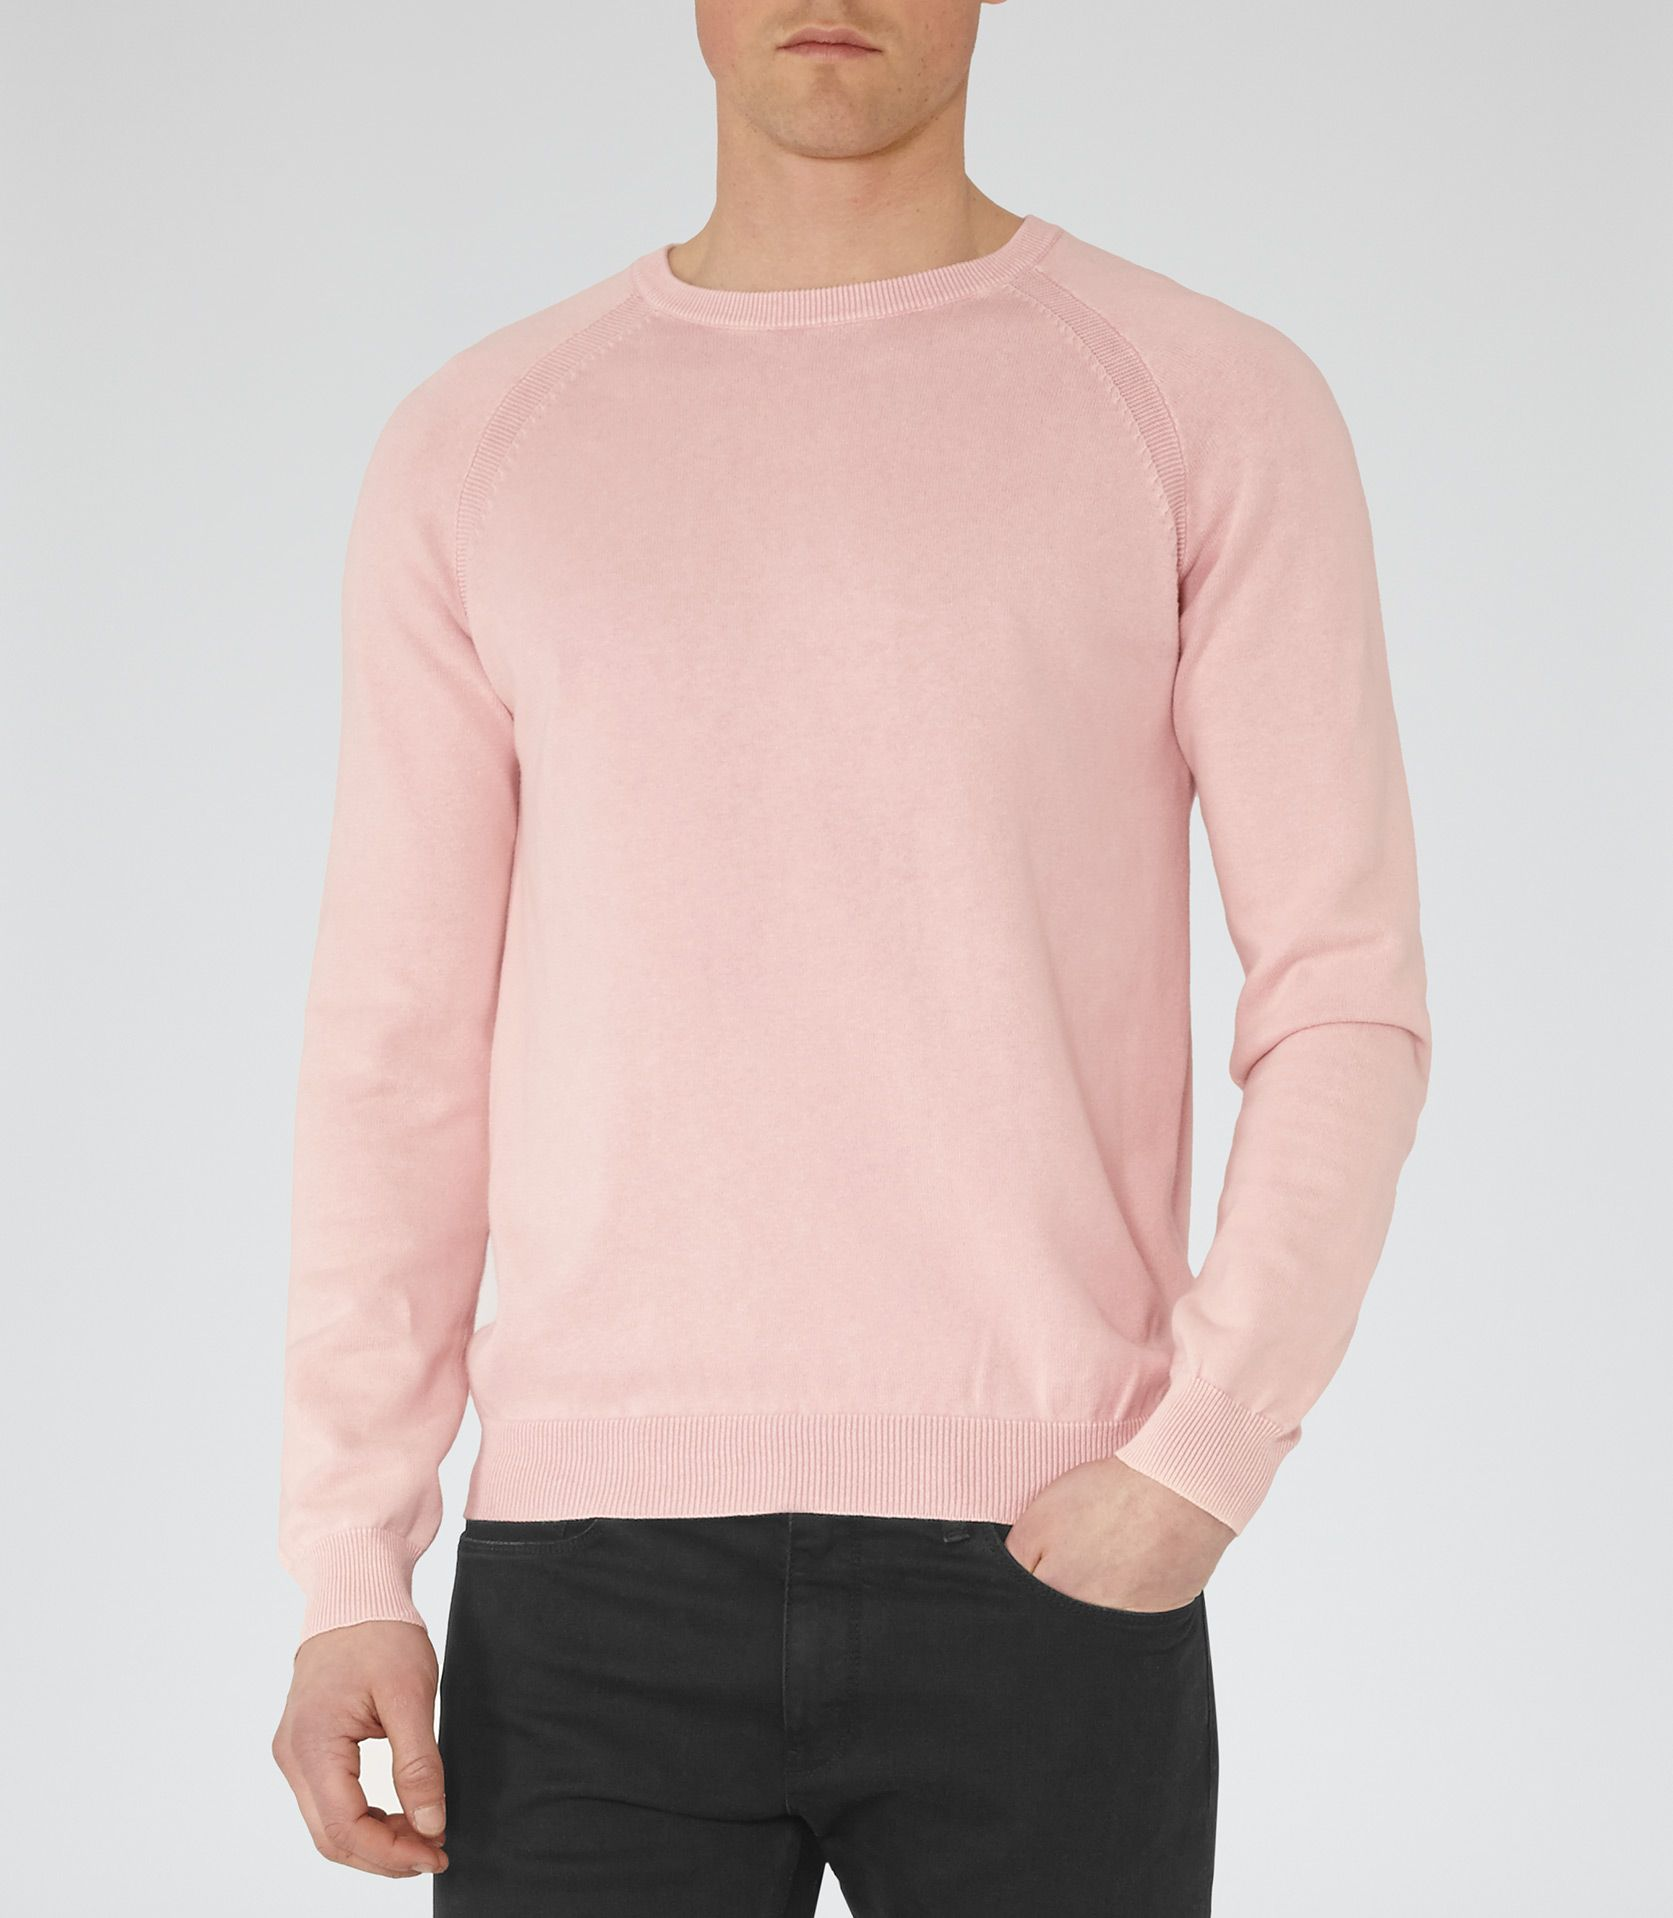 Mens Soft Pink Raglan Sleeve Sweatshirt - Reiss Anchor | Spring ...